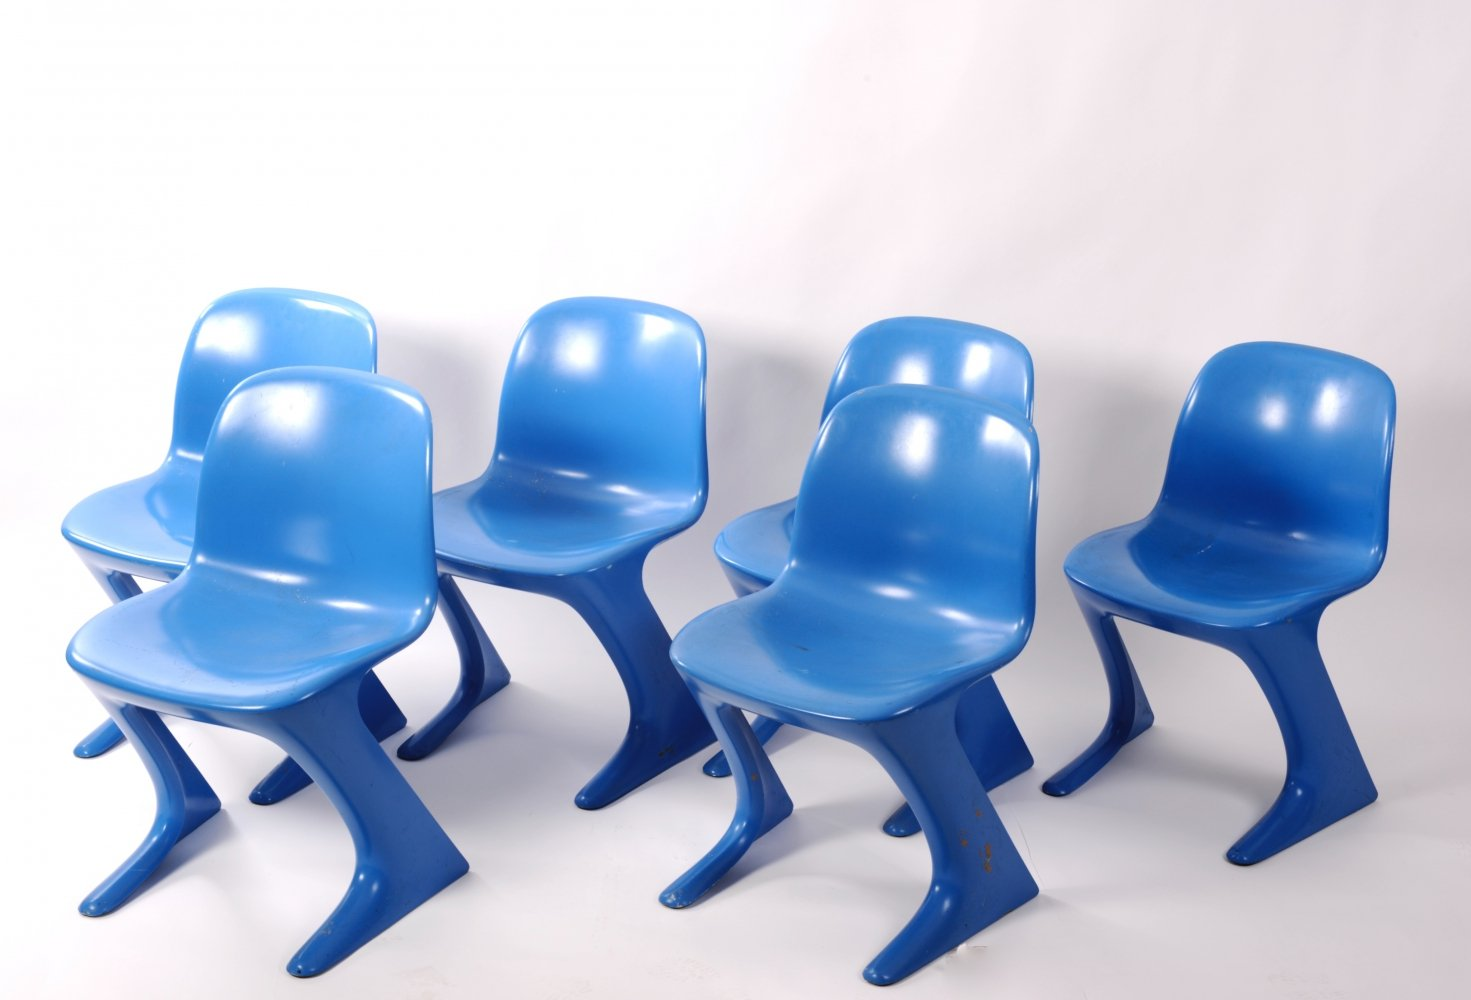 Six Kangaroo or Z chairs by Ernst Moeckl for Horn KG